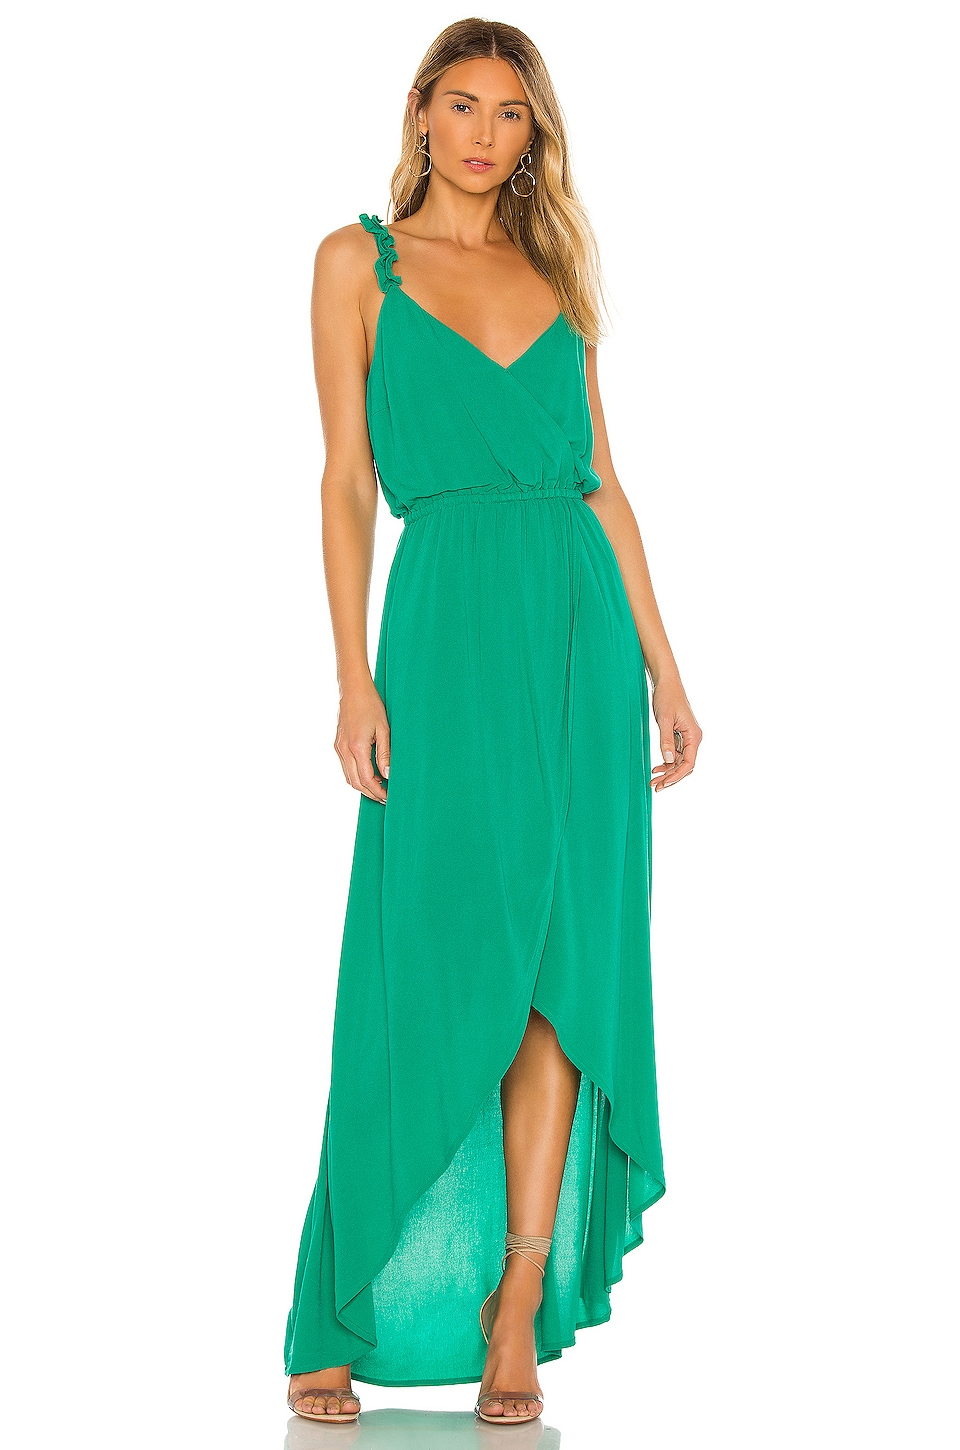 JACK by BB Dakota Ruffle & Cut Midi Dress             BB Dakota                                                                                                       CA$ 120.25 8